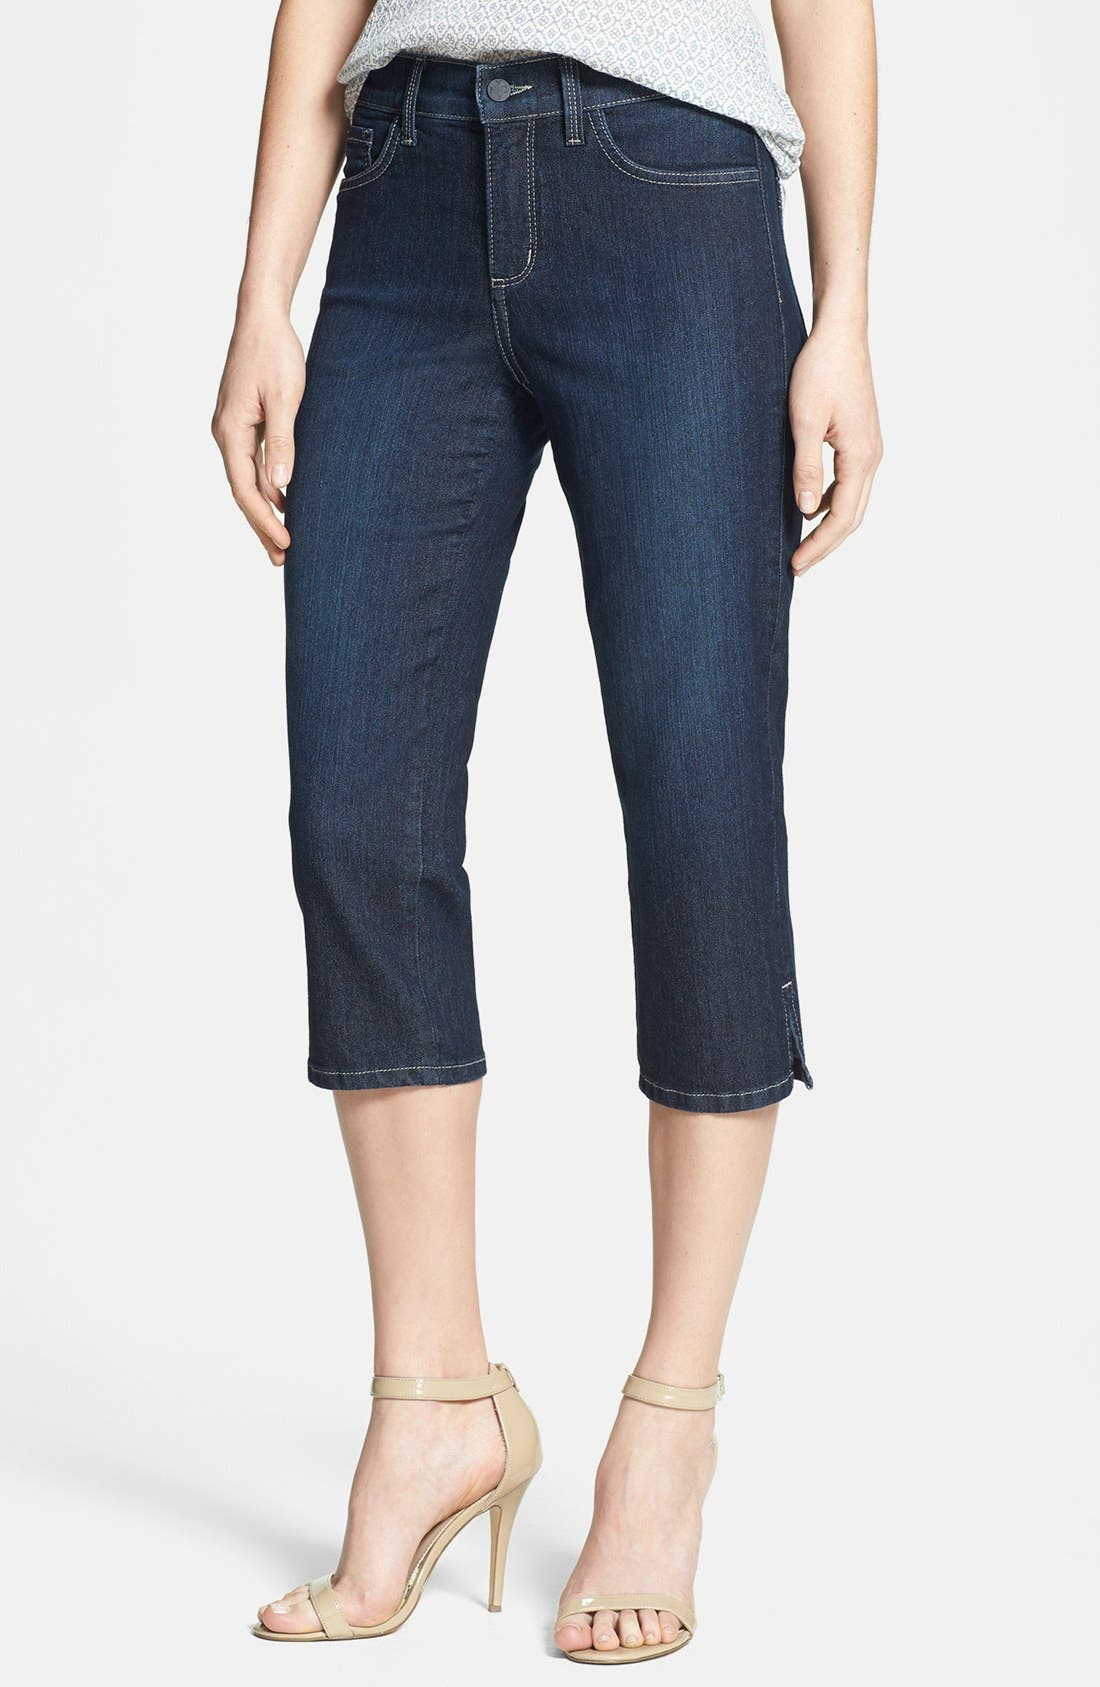 Alternate Image 1 Selected - NYDJ 'Hayden' Stretch Crop Jeans (Hollywood)